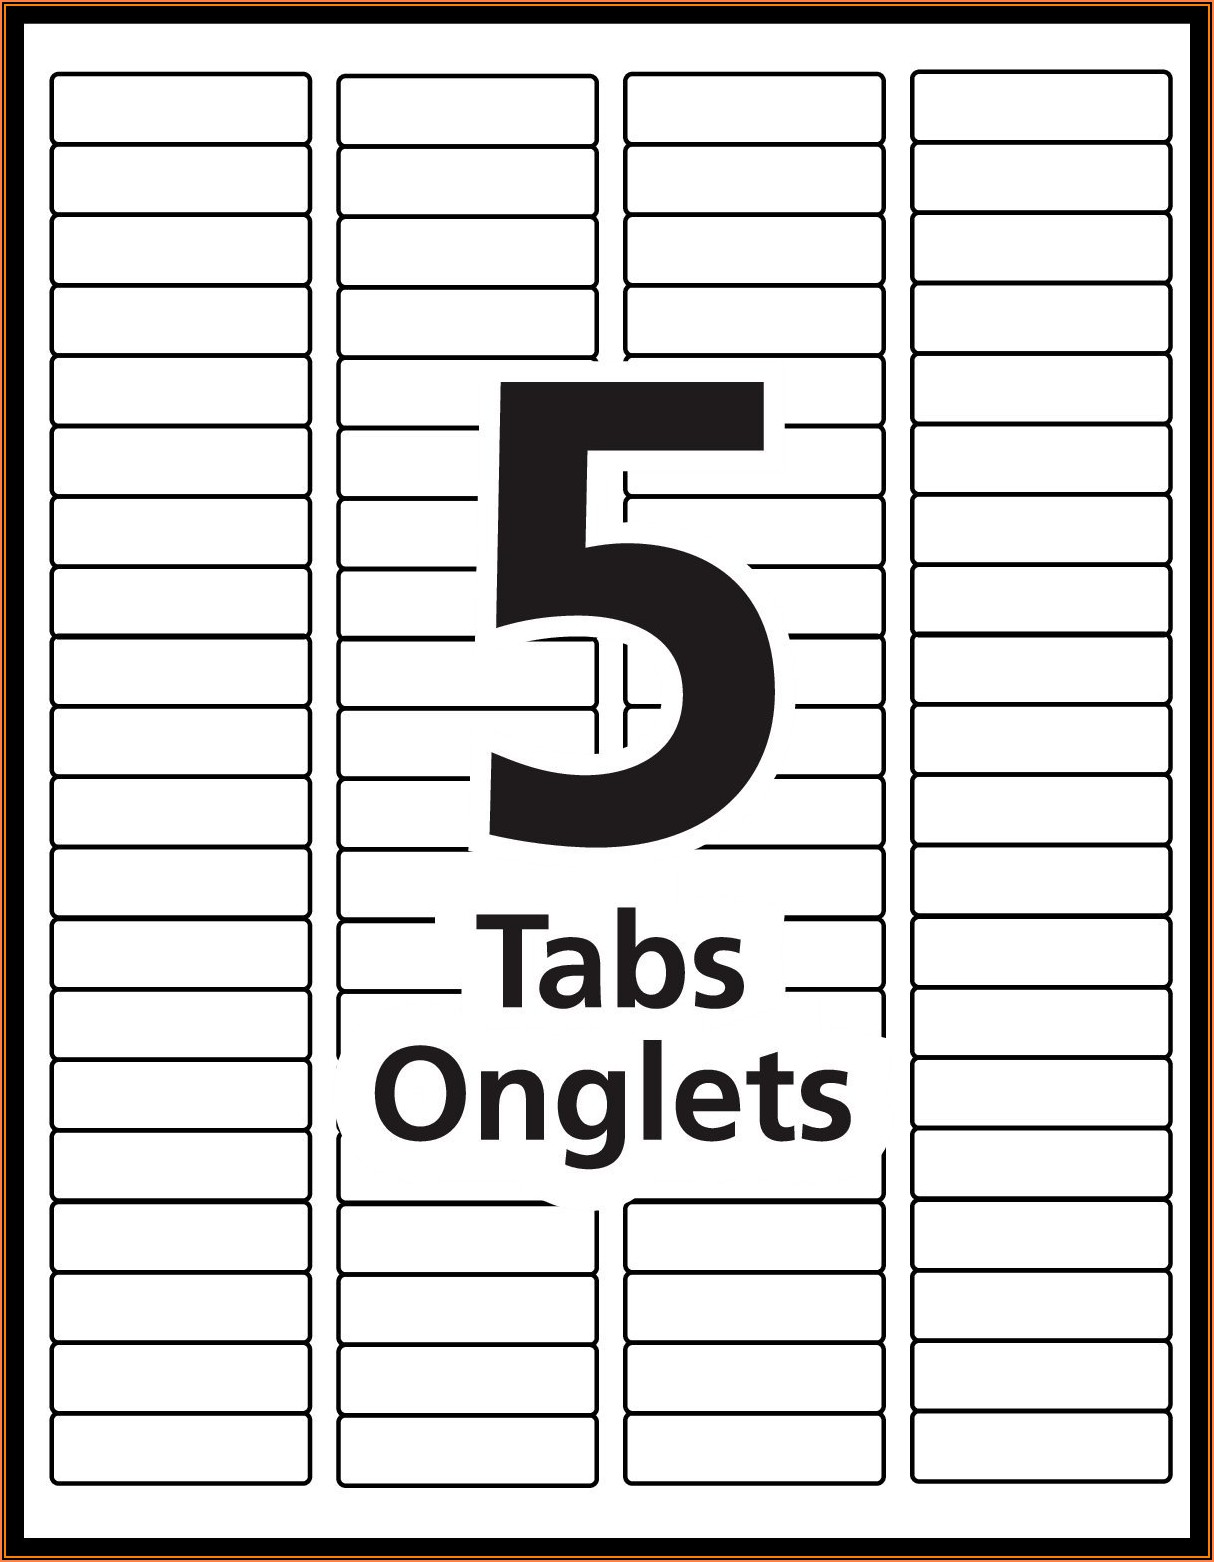 Avery Printable Tabs 16281 Template